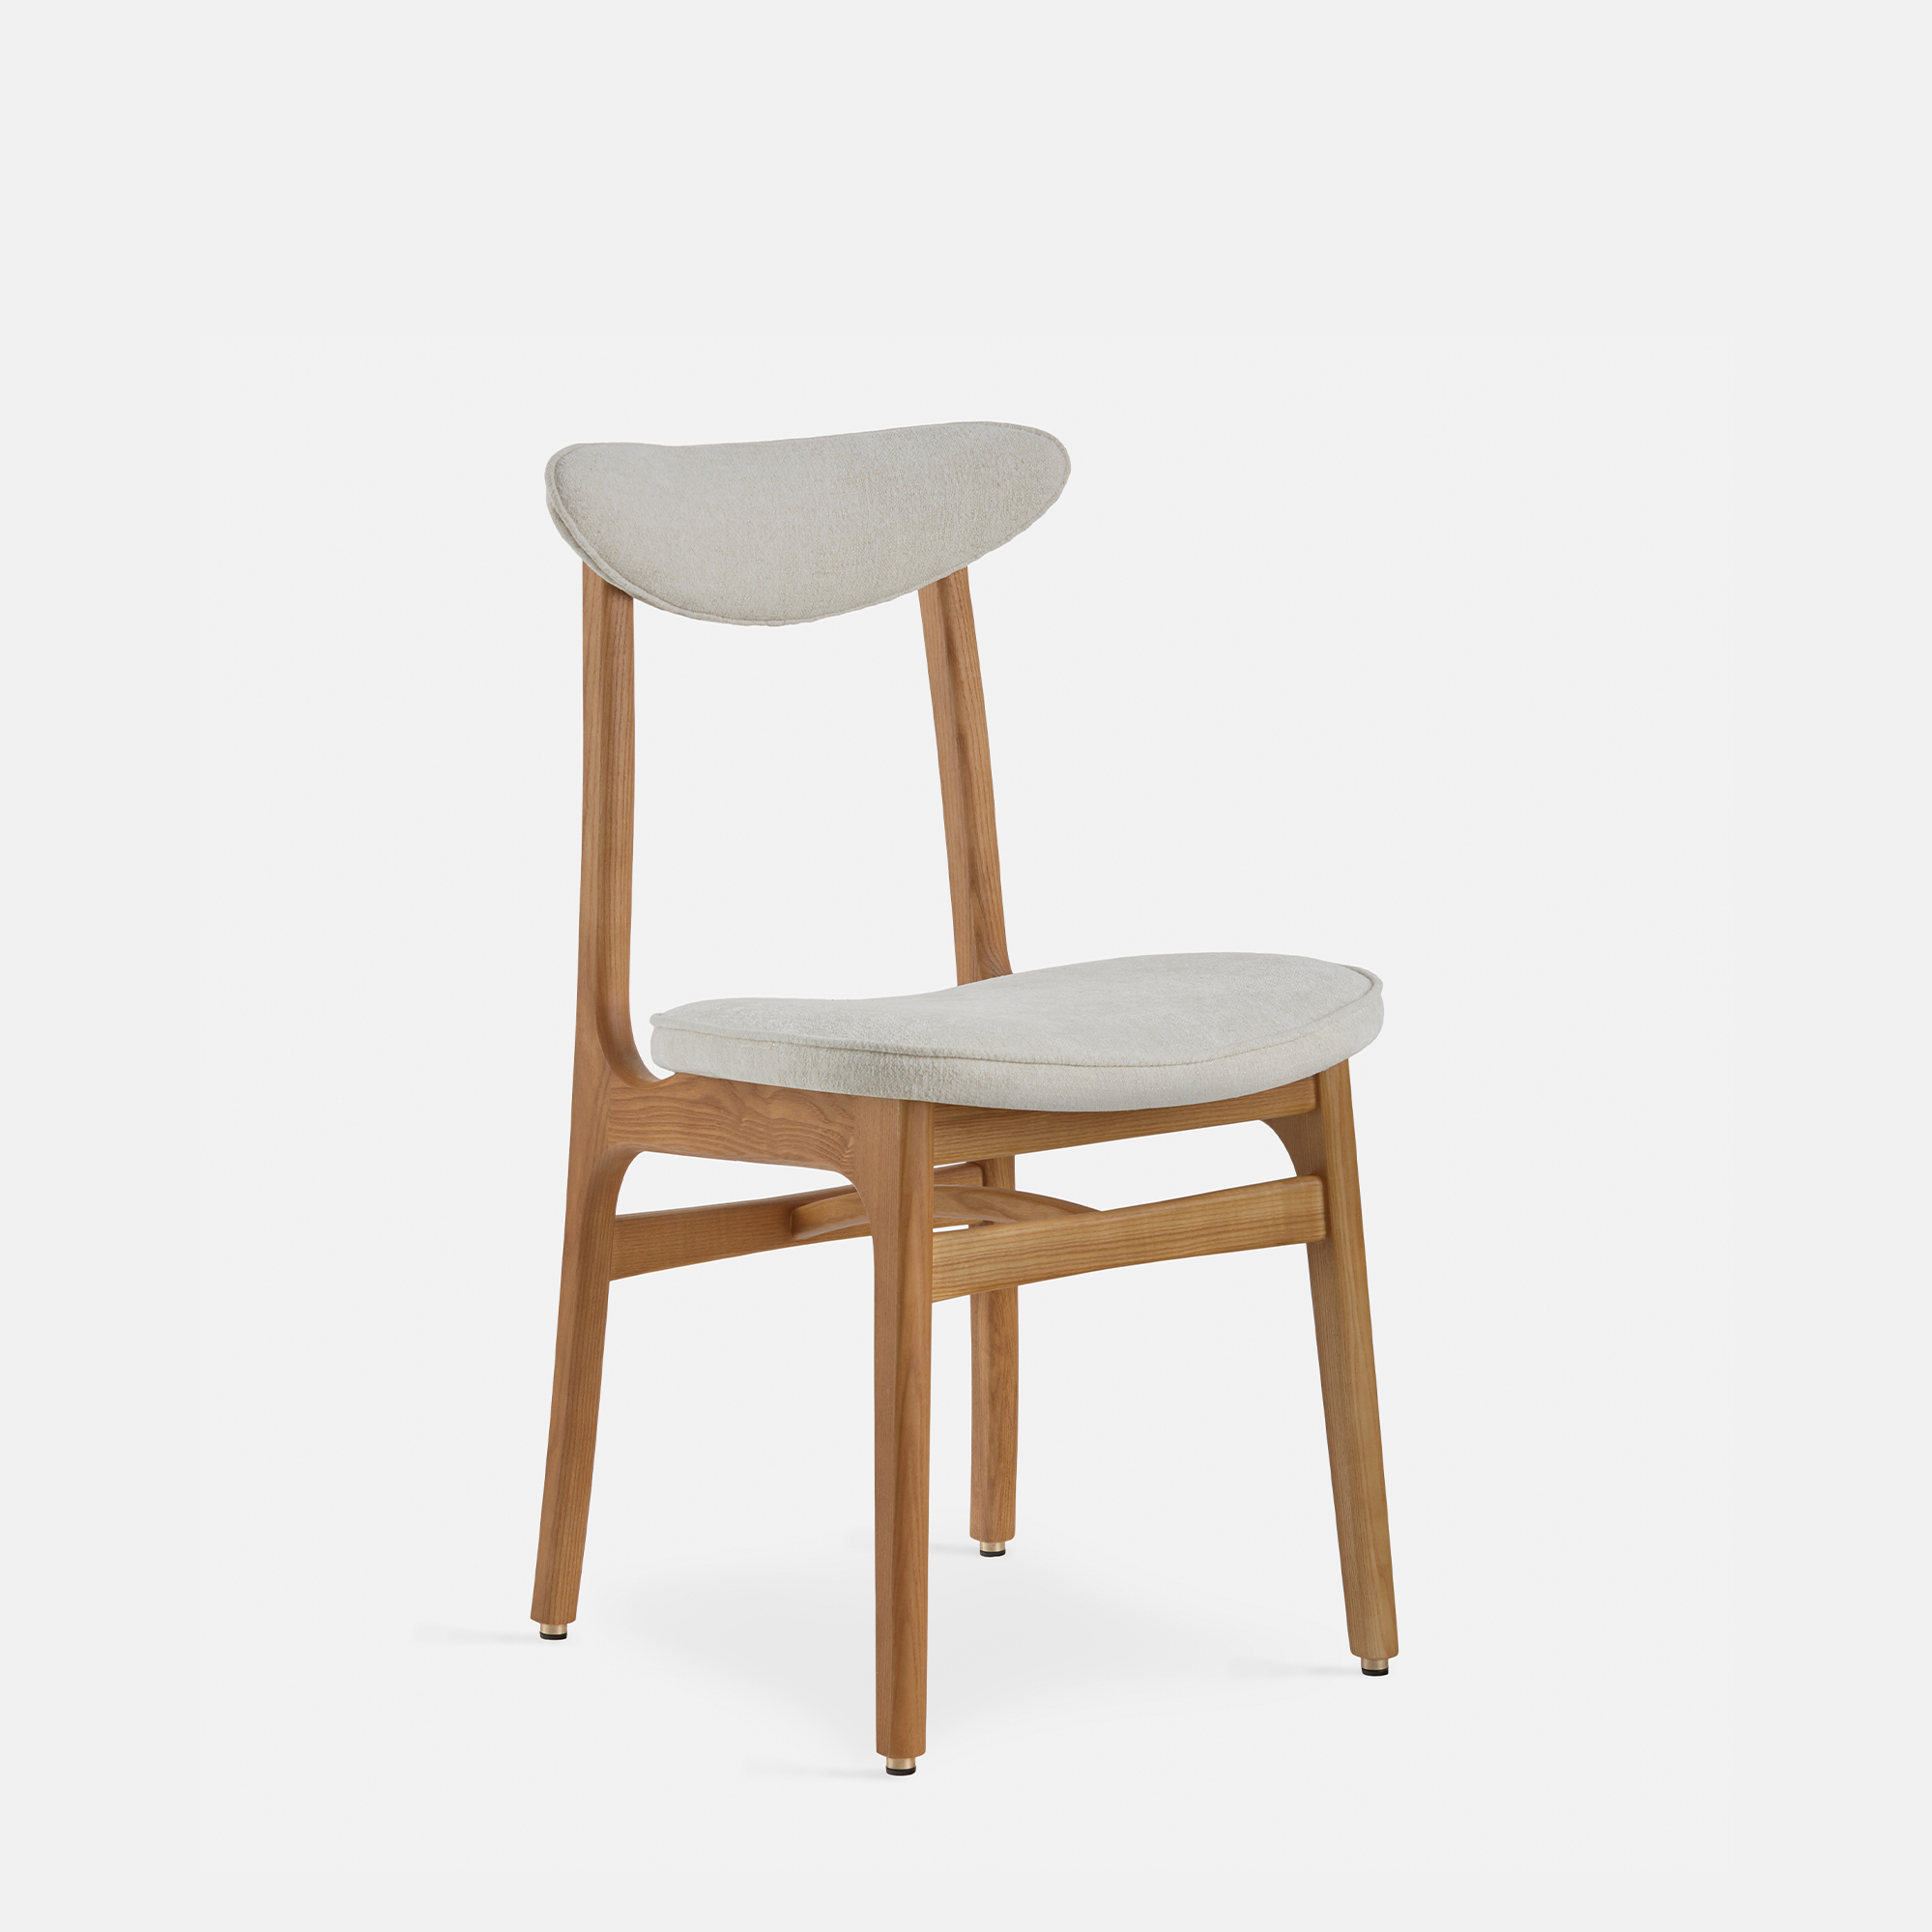 366-Concept-200-190-Chair-W02-Marble-White